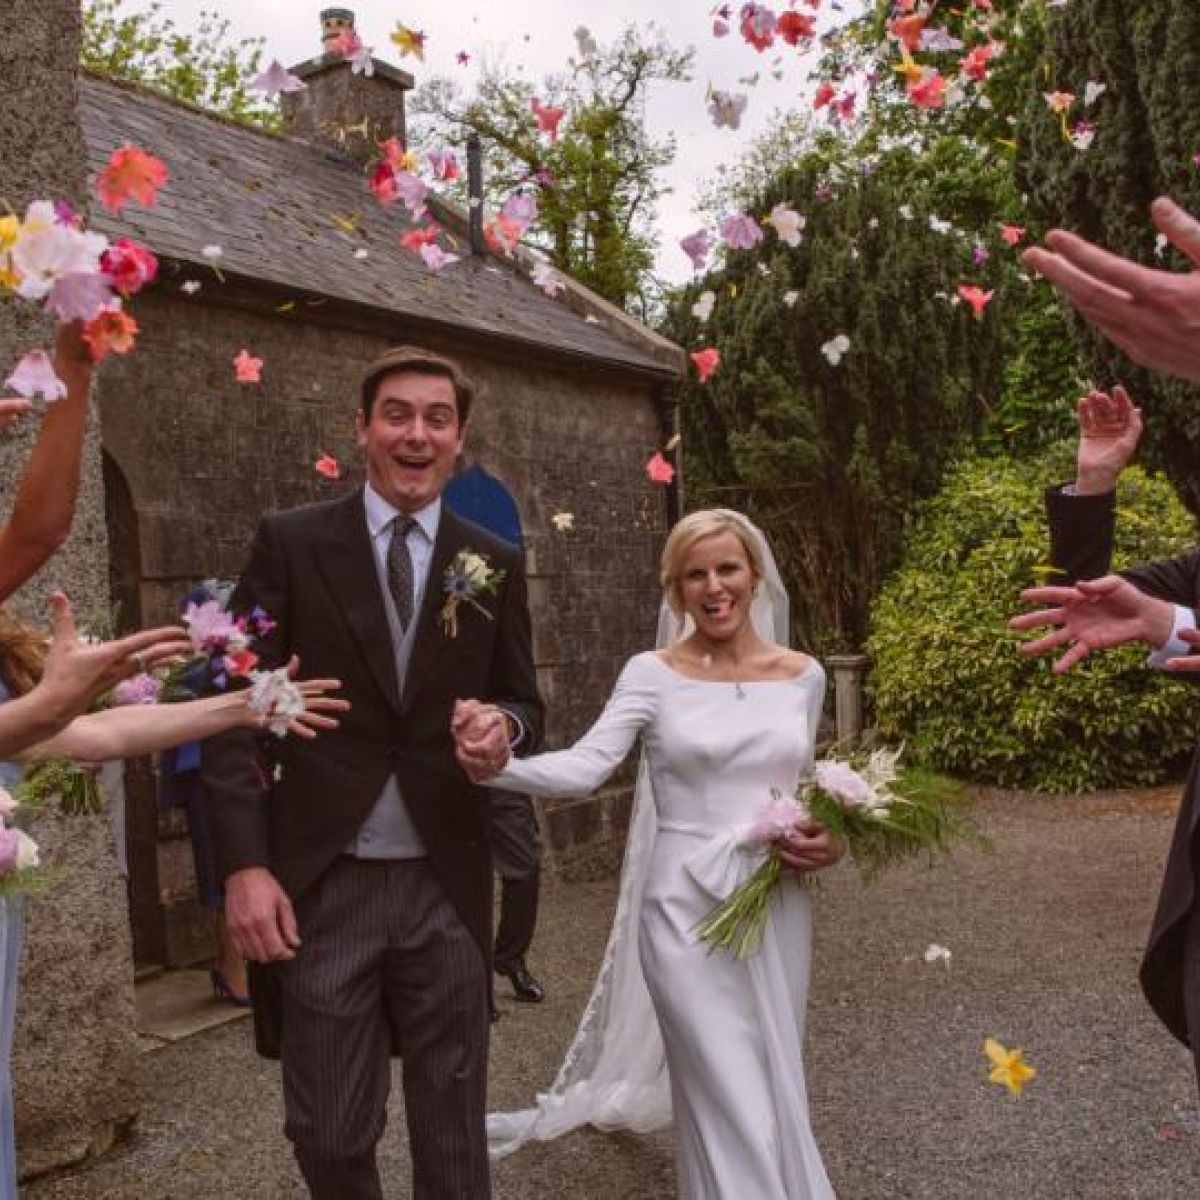 Our wedding story: A fairy-tale garden party in sunny Slane